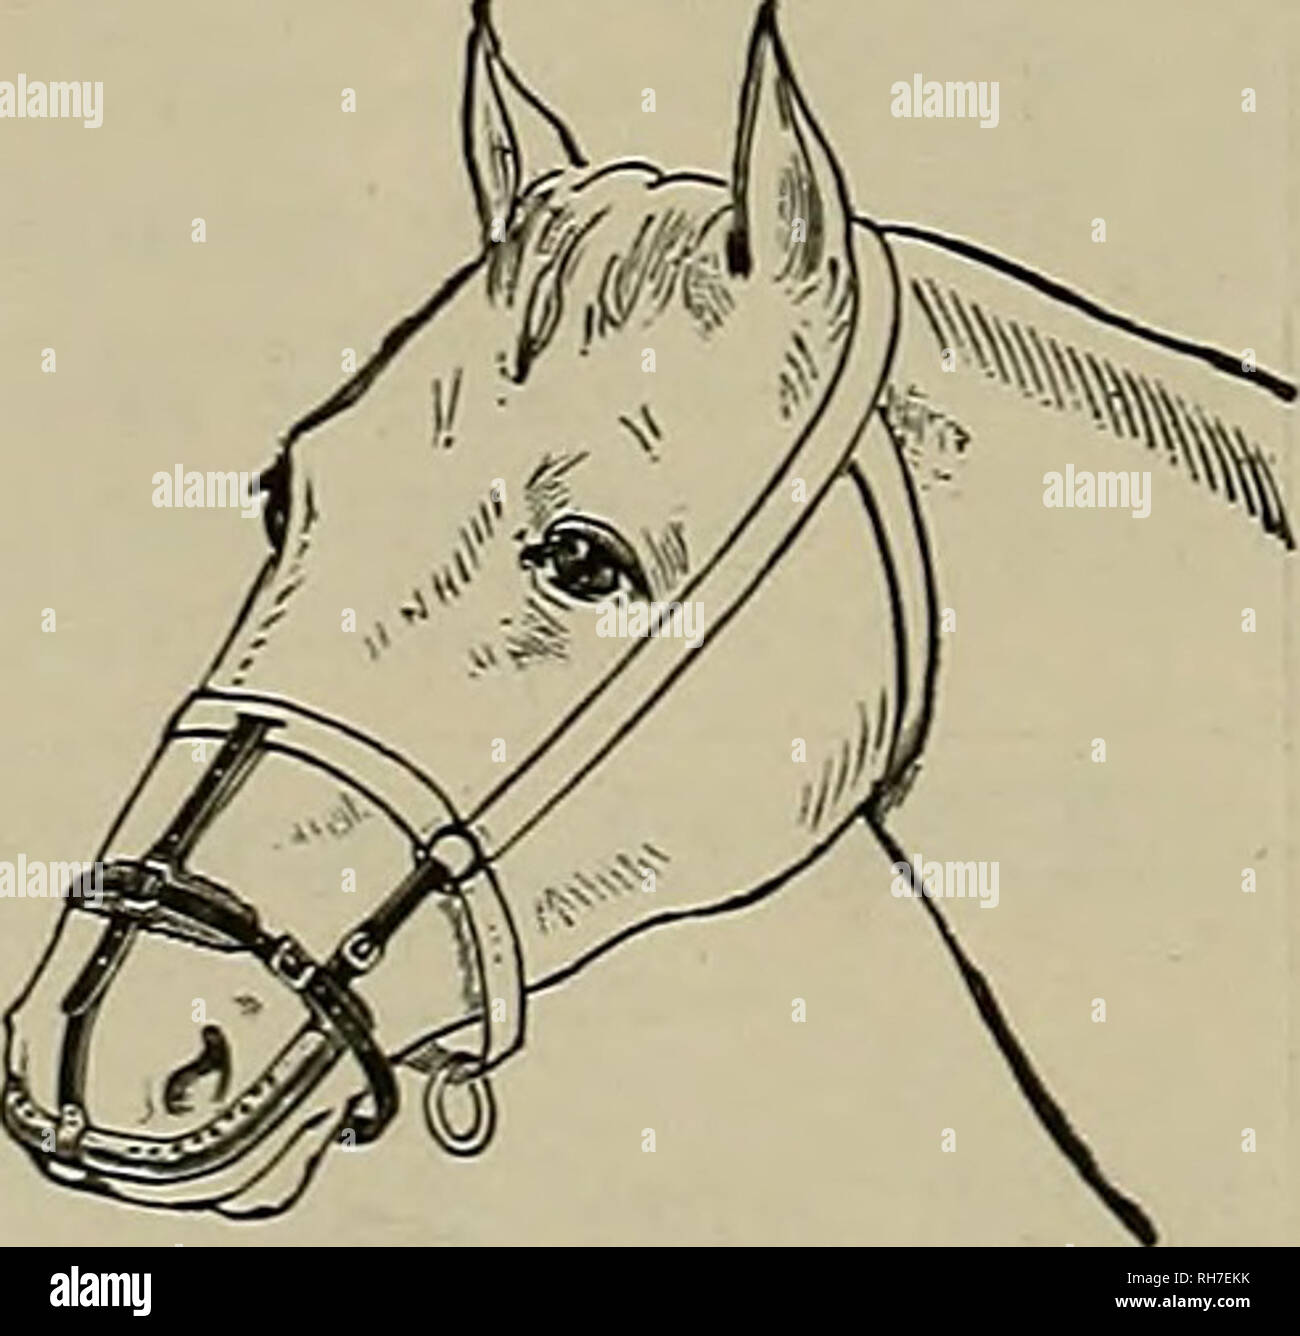 . Breeder and sportsman. Horses. 4 an be worn without dbvuuiluri while feeding and sleeping* A Specific for Catarrh in Horses. Cares and prevents DISTEMPER, and all contagions diseases COUGHS, COLDS, PINK-EYE, IN- FLUENZA, NASAL, GLEET, HEAVES, ete. The only effectual method Invented of applying medicine directly to the seat of the above-mentioned ailments in horses andcartle. AddreSB Welch Inhaler and Medicine Co., 57 Second St., San Francisco, Cal. SHAW CASTS id SULKIES. Please note that these images are extracted from scanned page images that may have been digitally enhanced for readability Stock Photo